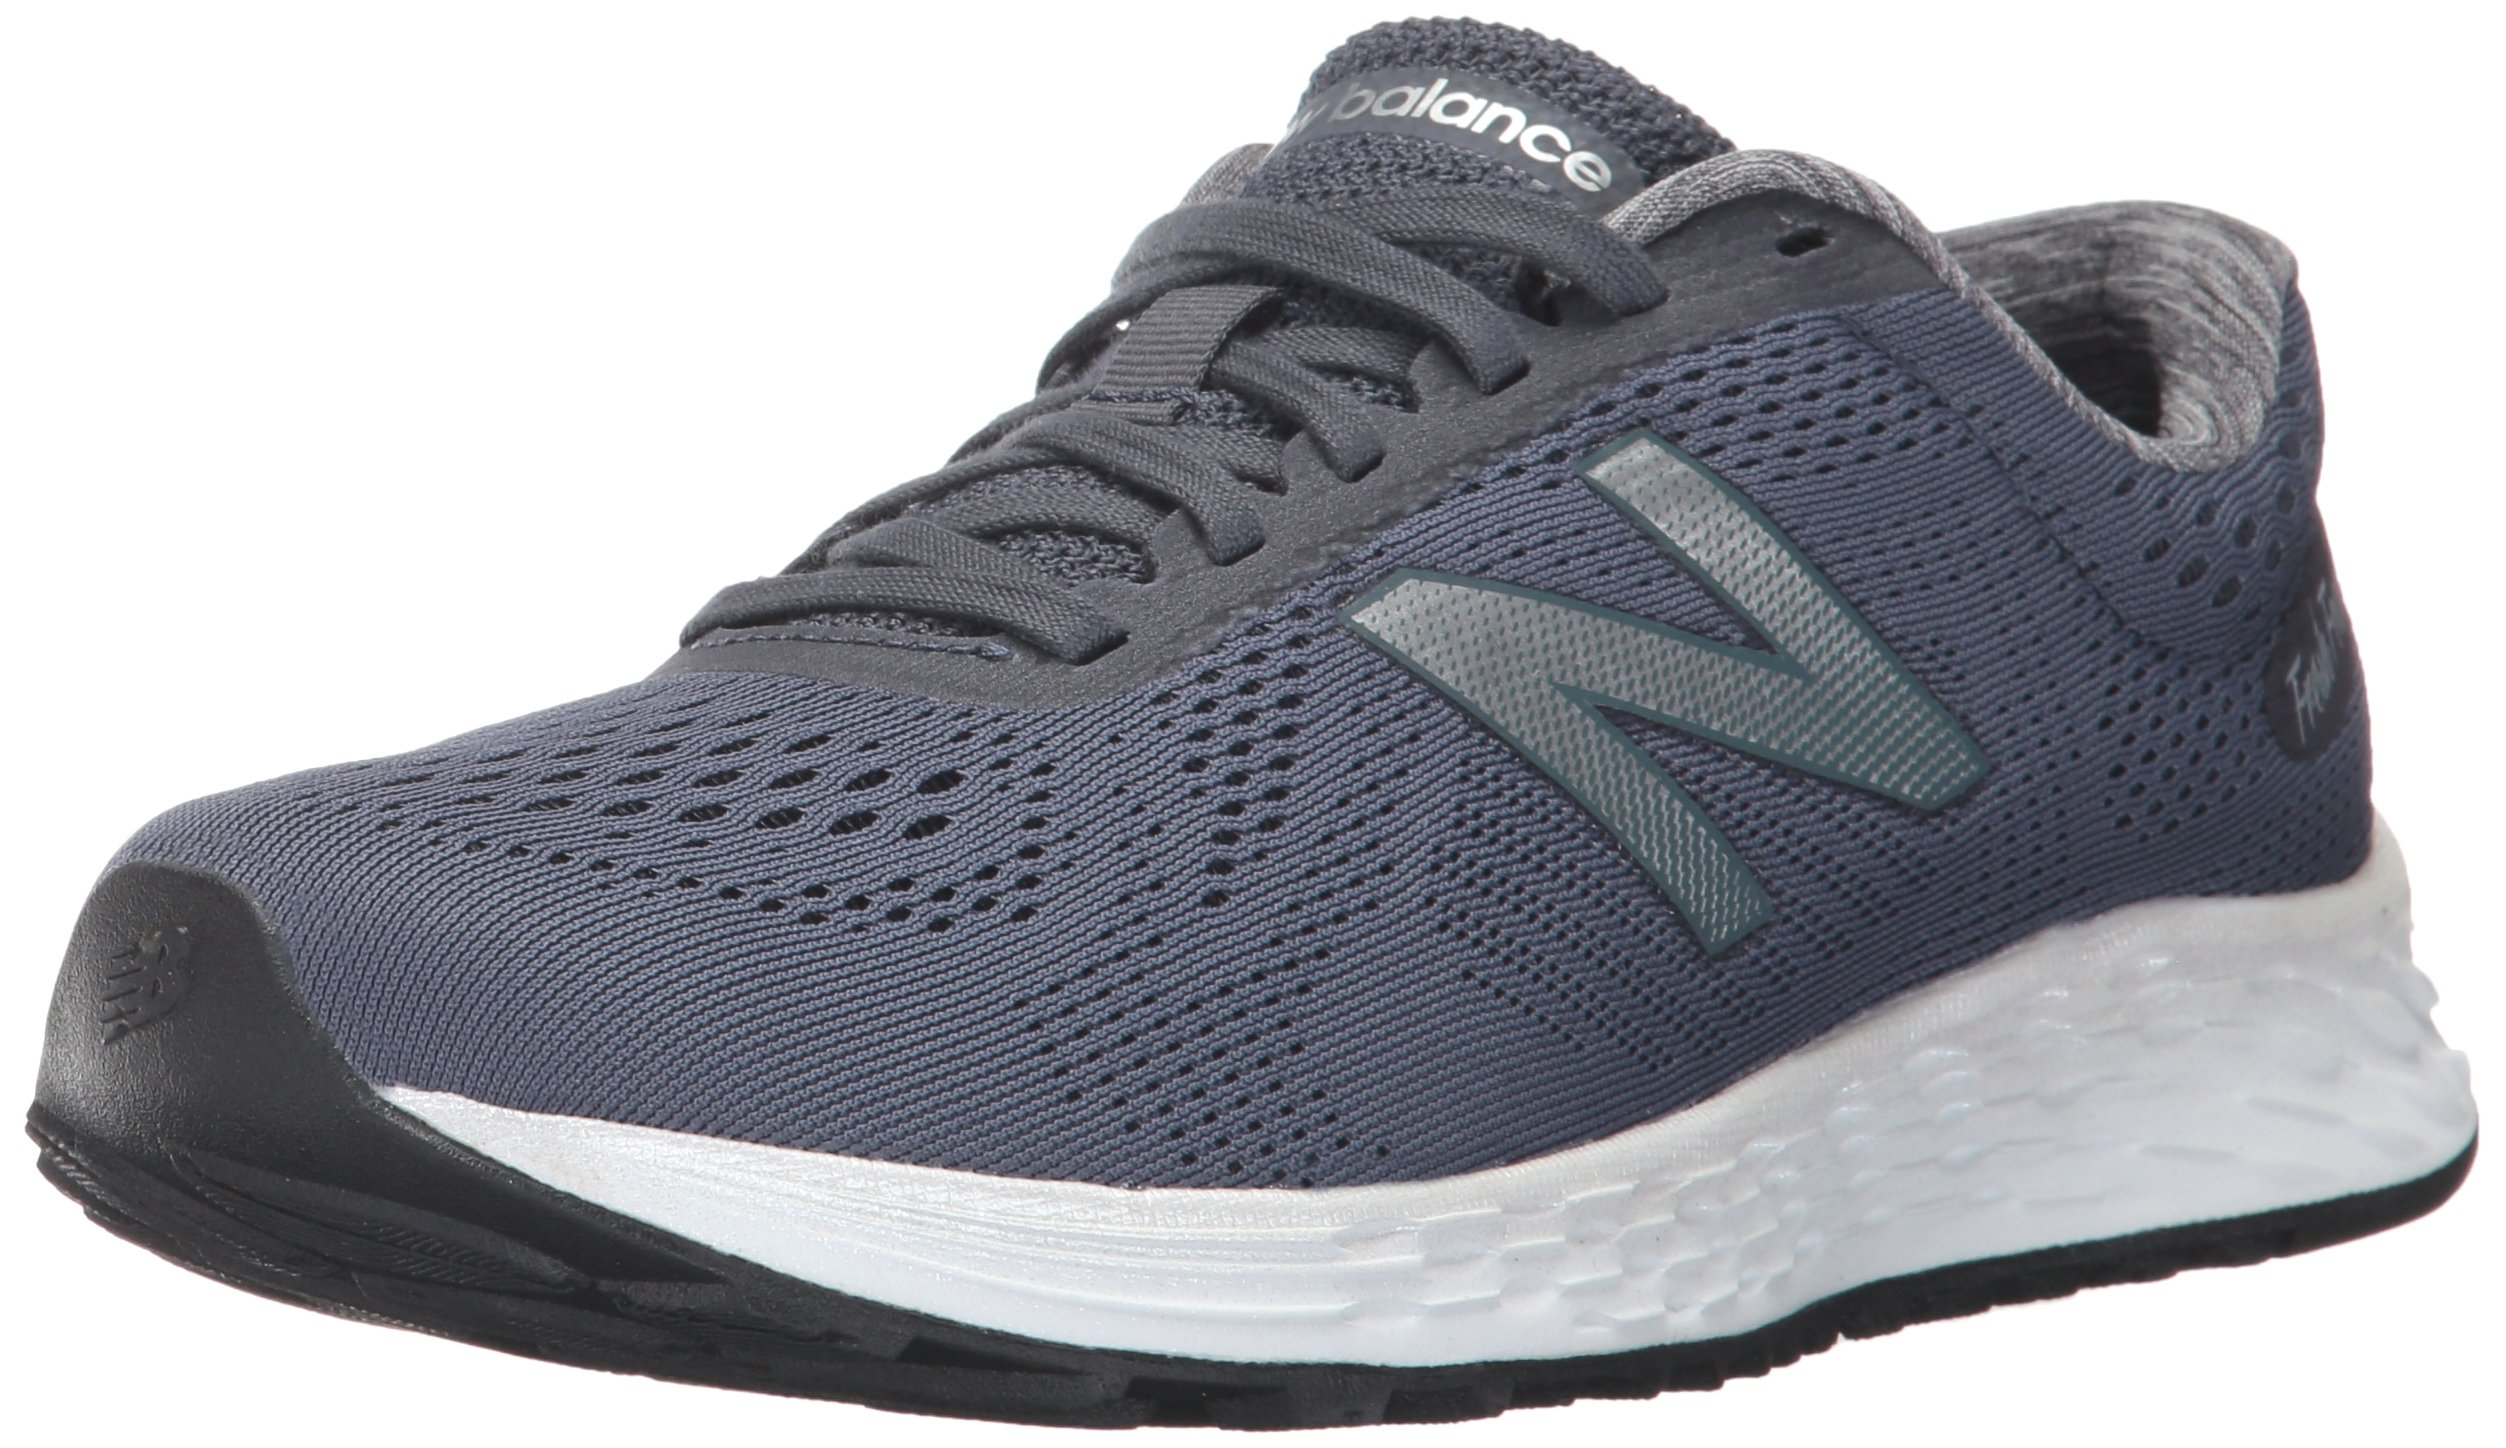 New Balance Women's Arishi v1 Fresh Foam Running Shoe, Dark Grey, 5 B US by New Balance (Image #1)